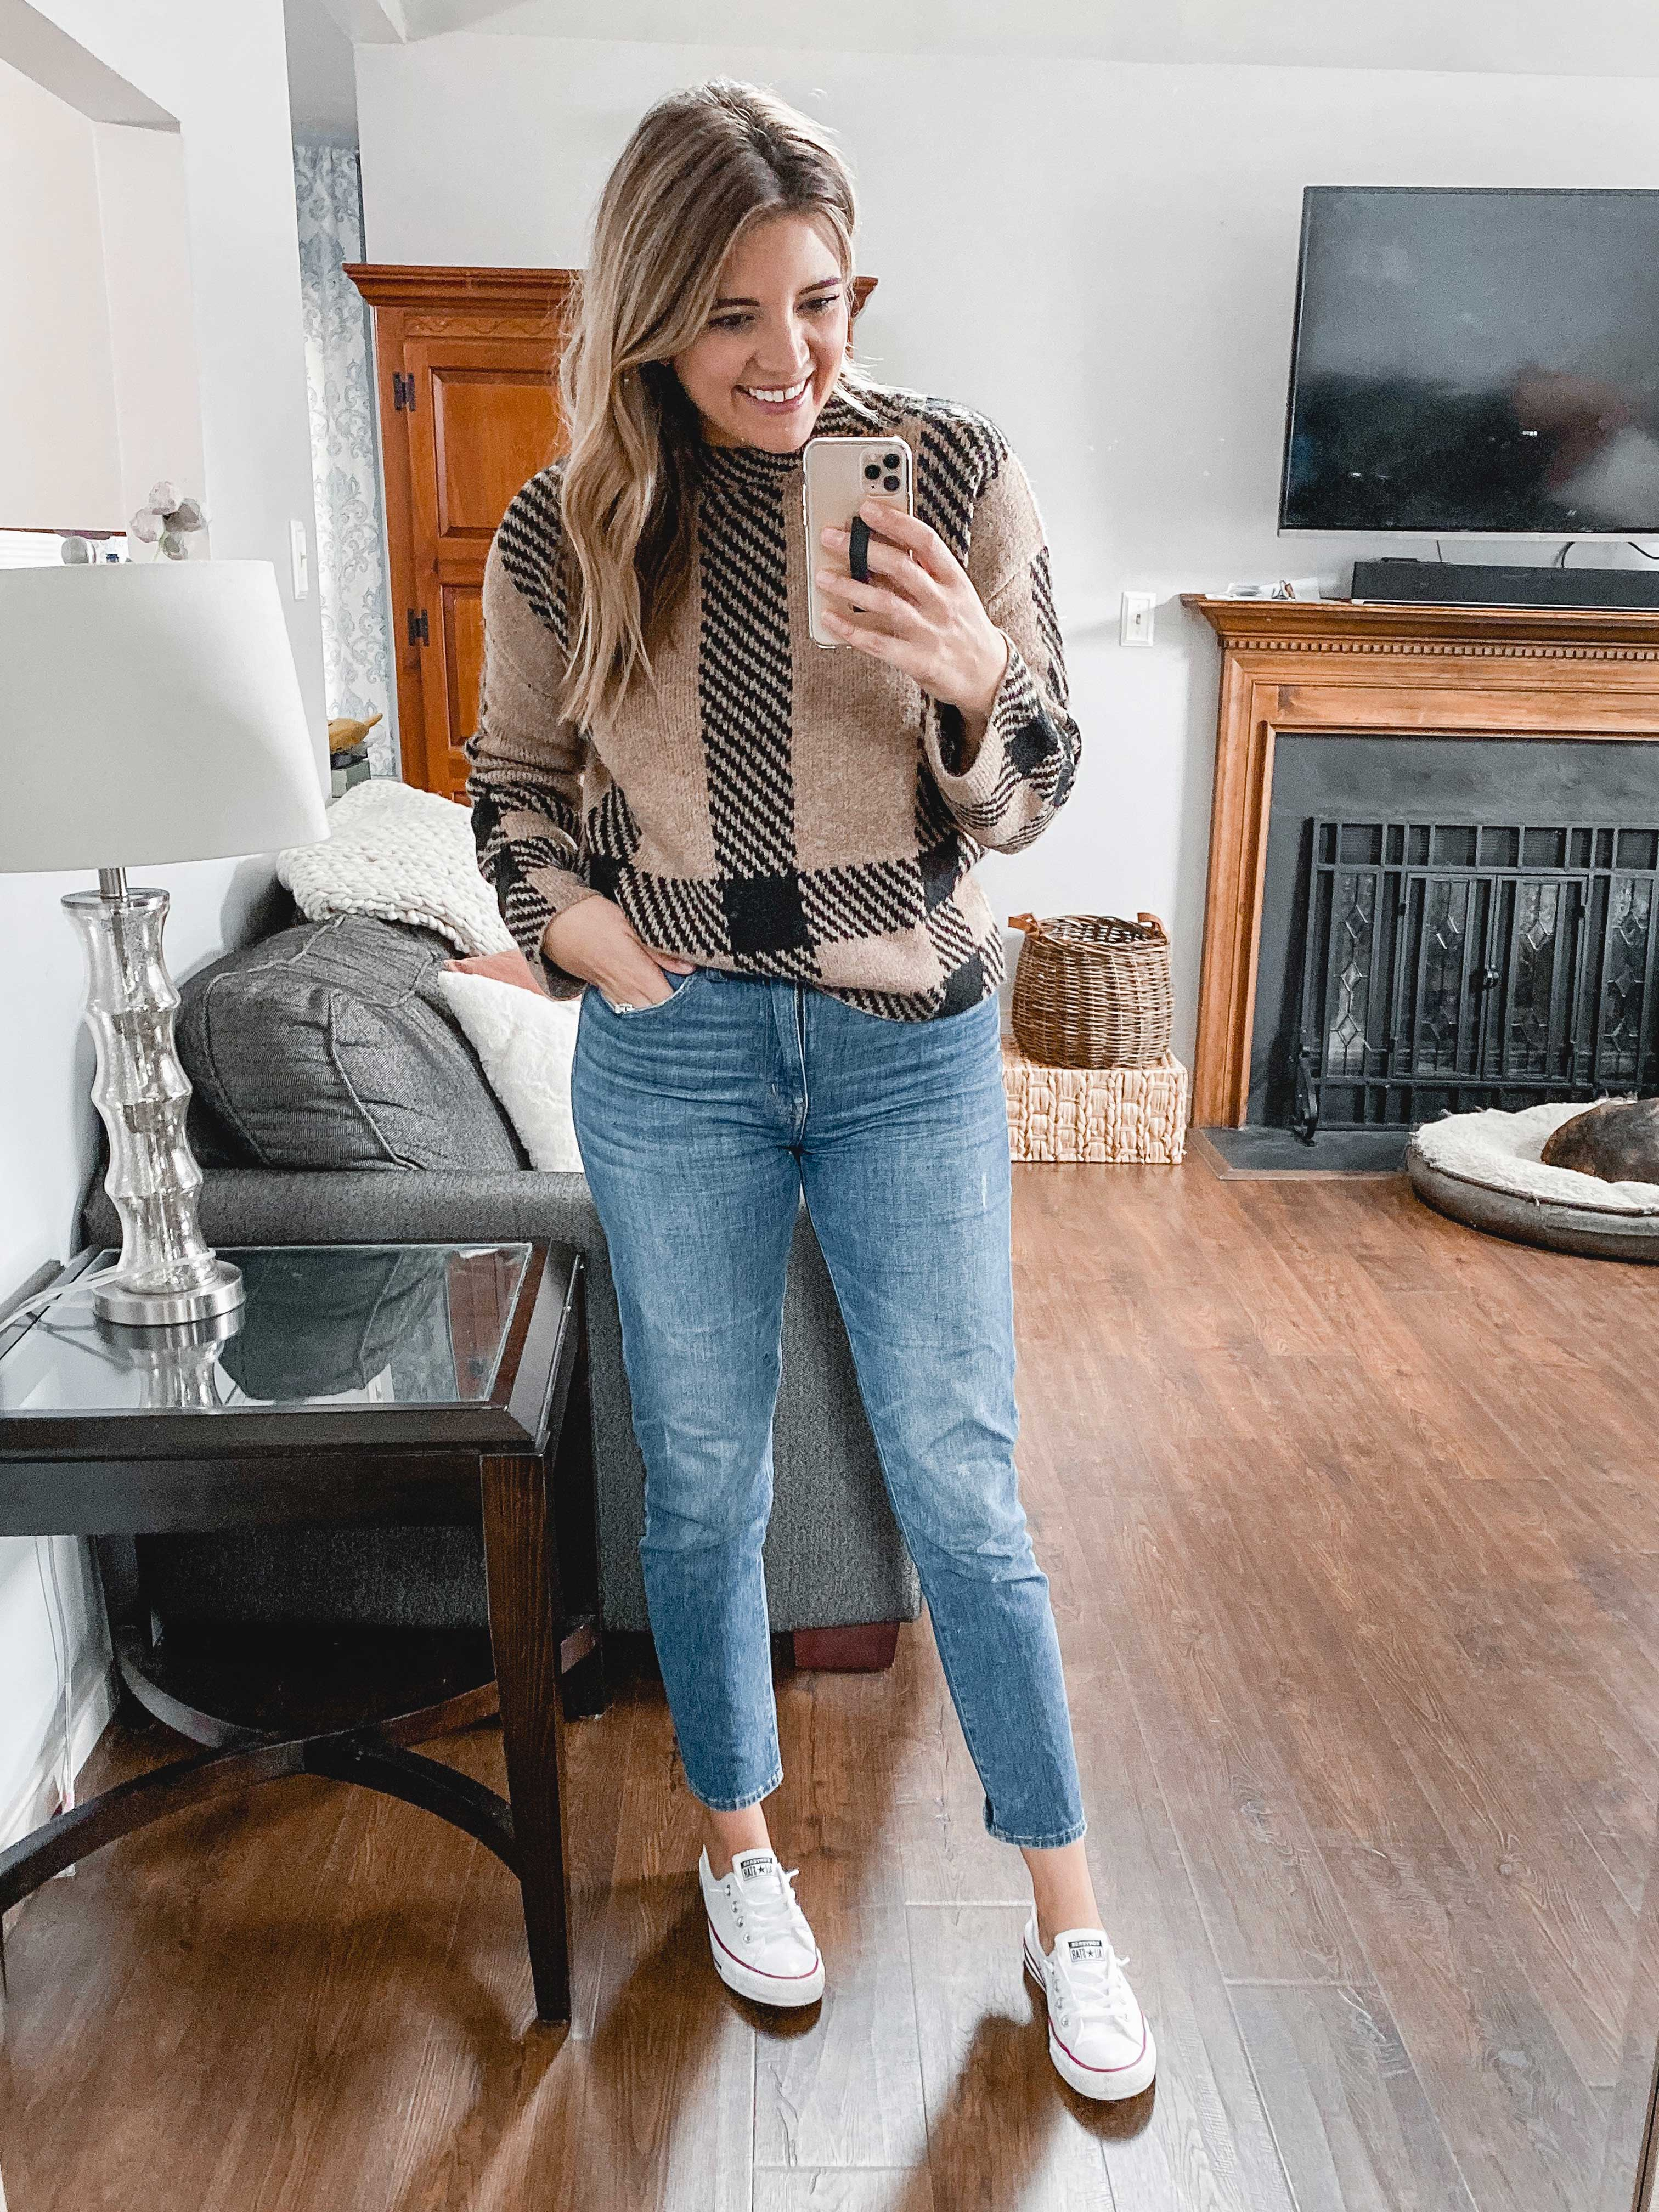 Virginia blogger, Lauren Dix, shares over 15 winter amazon fashion finds in her November Amazon Fashion haul!